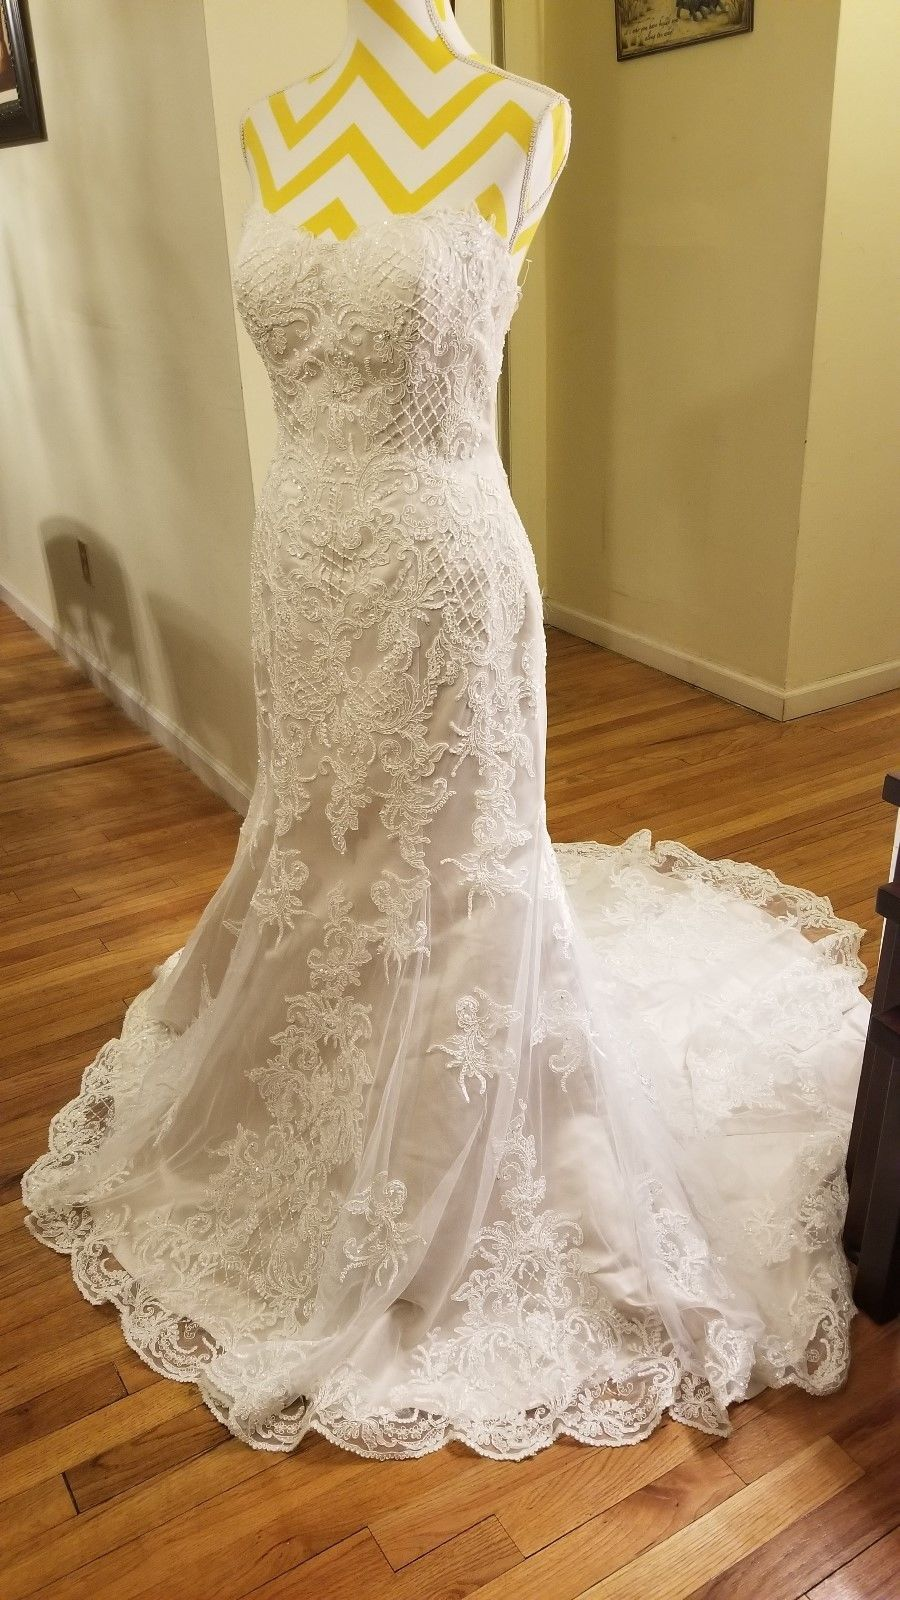 Wow wedding dress size 10 ivory lace over champagne Maggi sottero ...